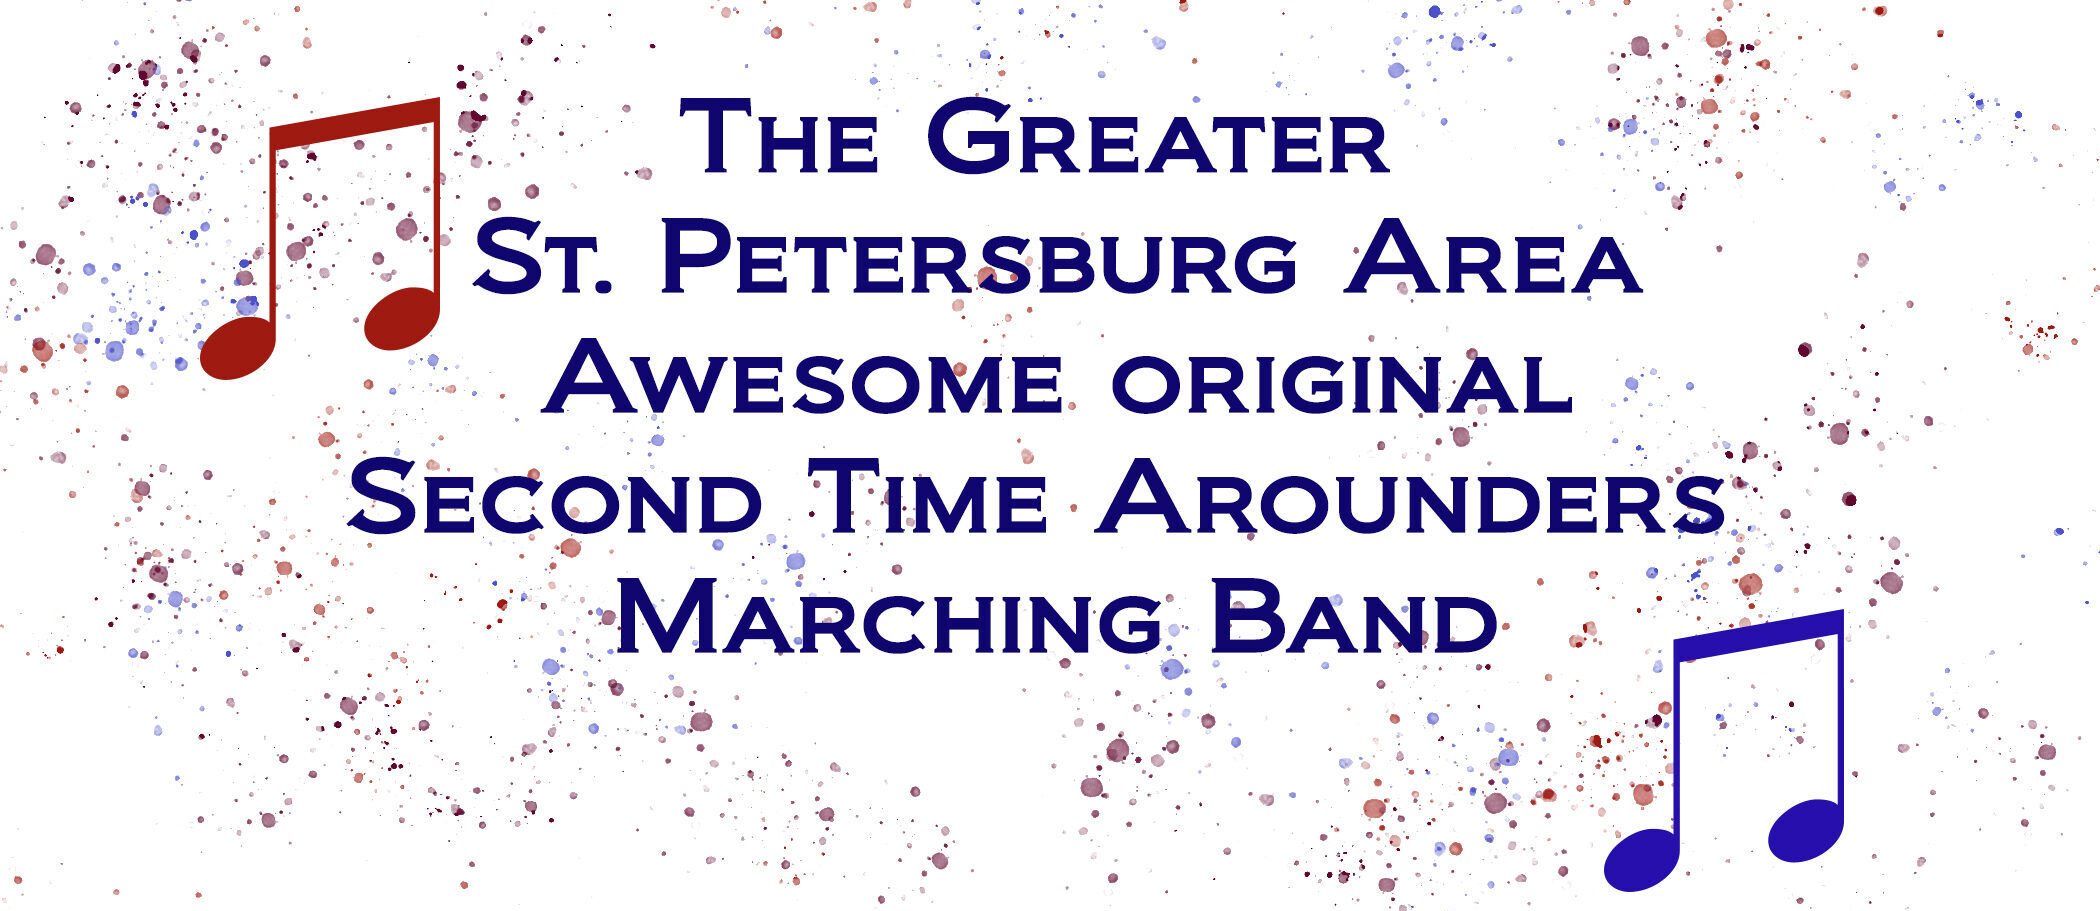 The Greater St. Petersburg Area, Awesome, Original, Second Time Arounders Marching Band